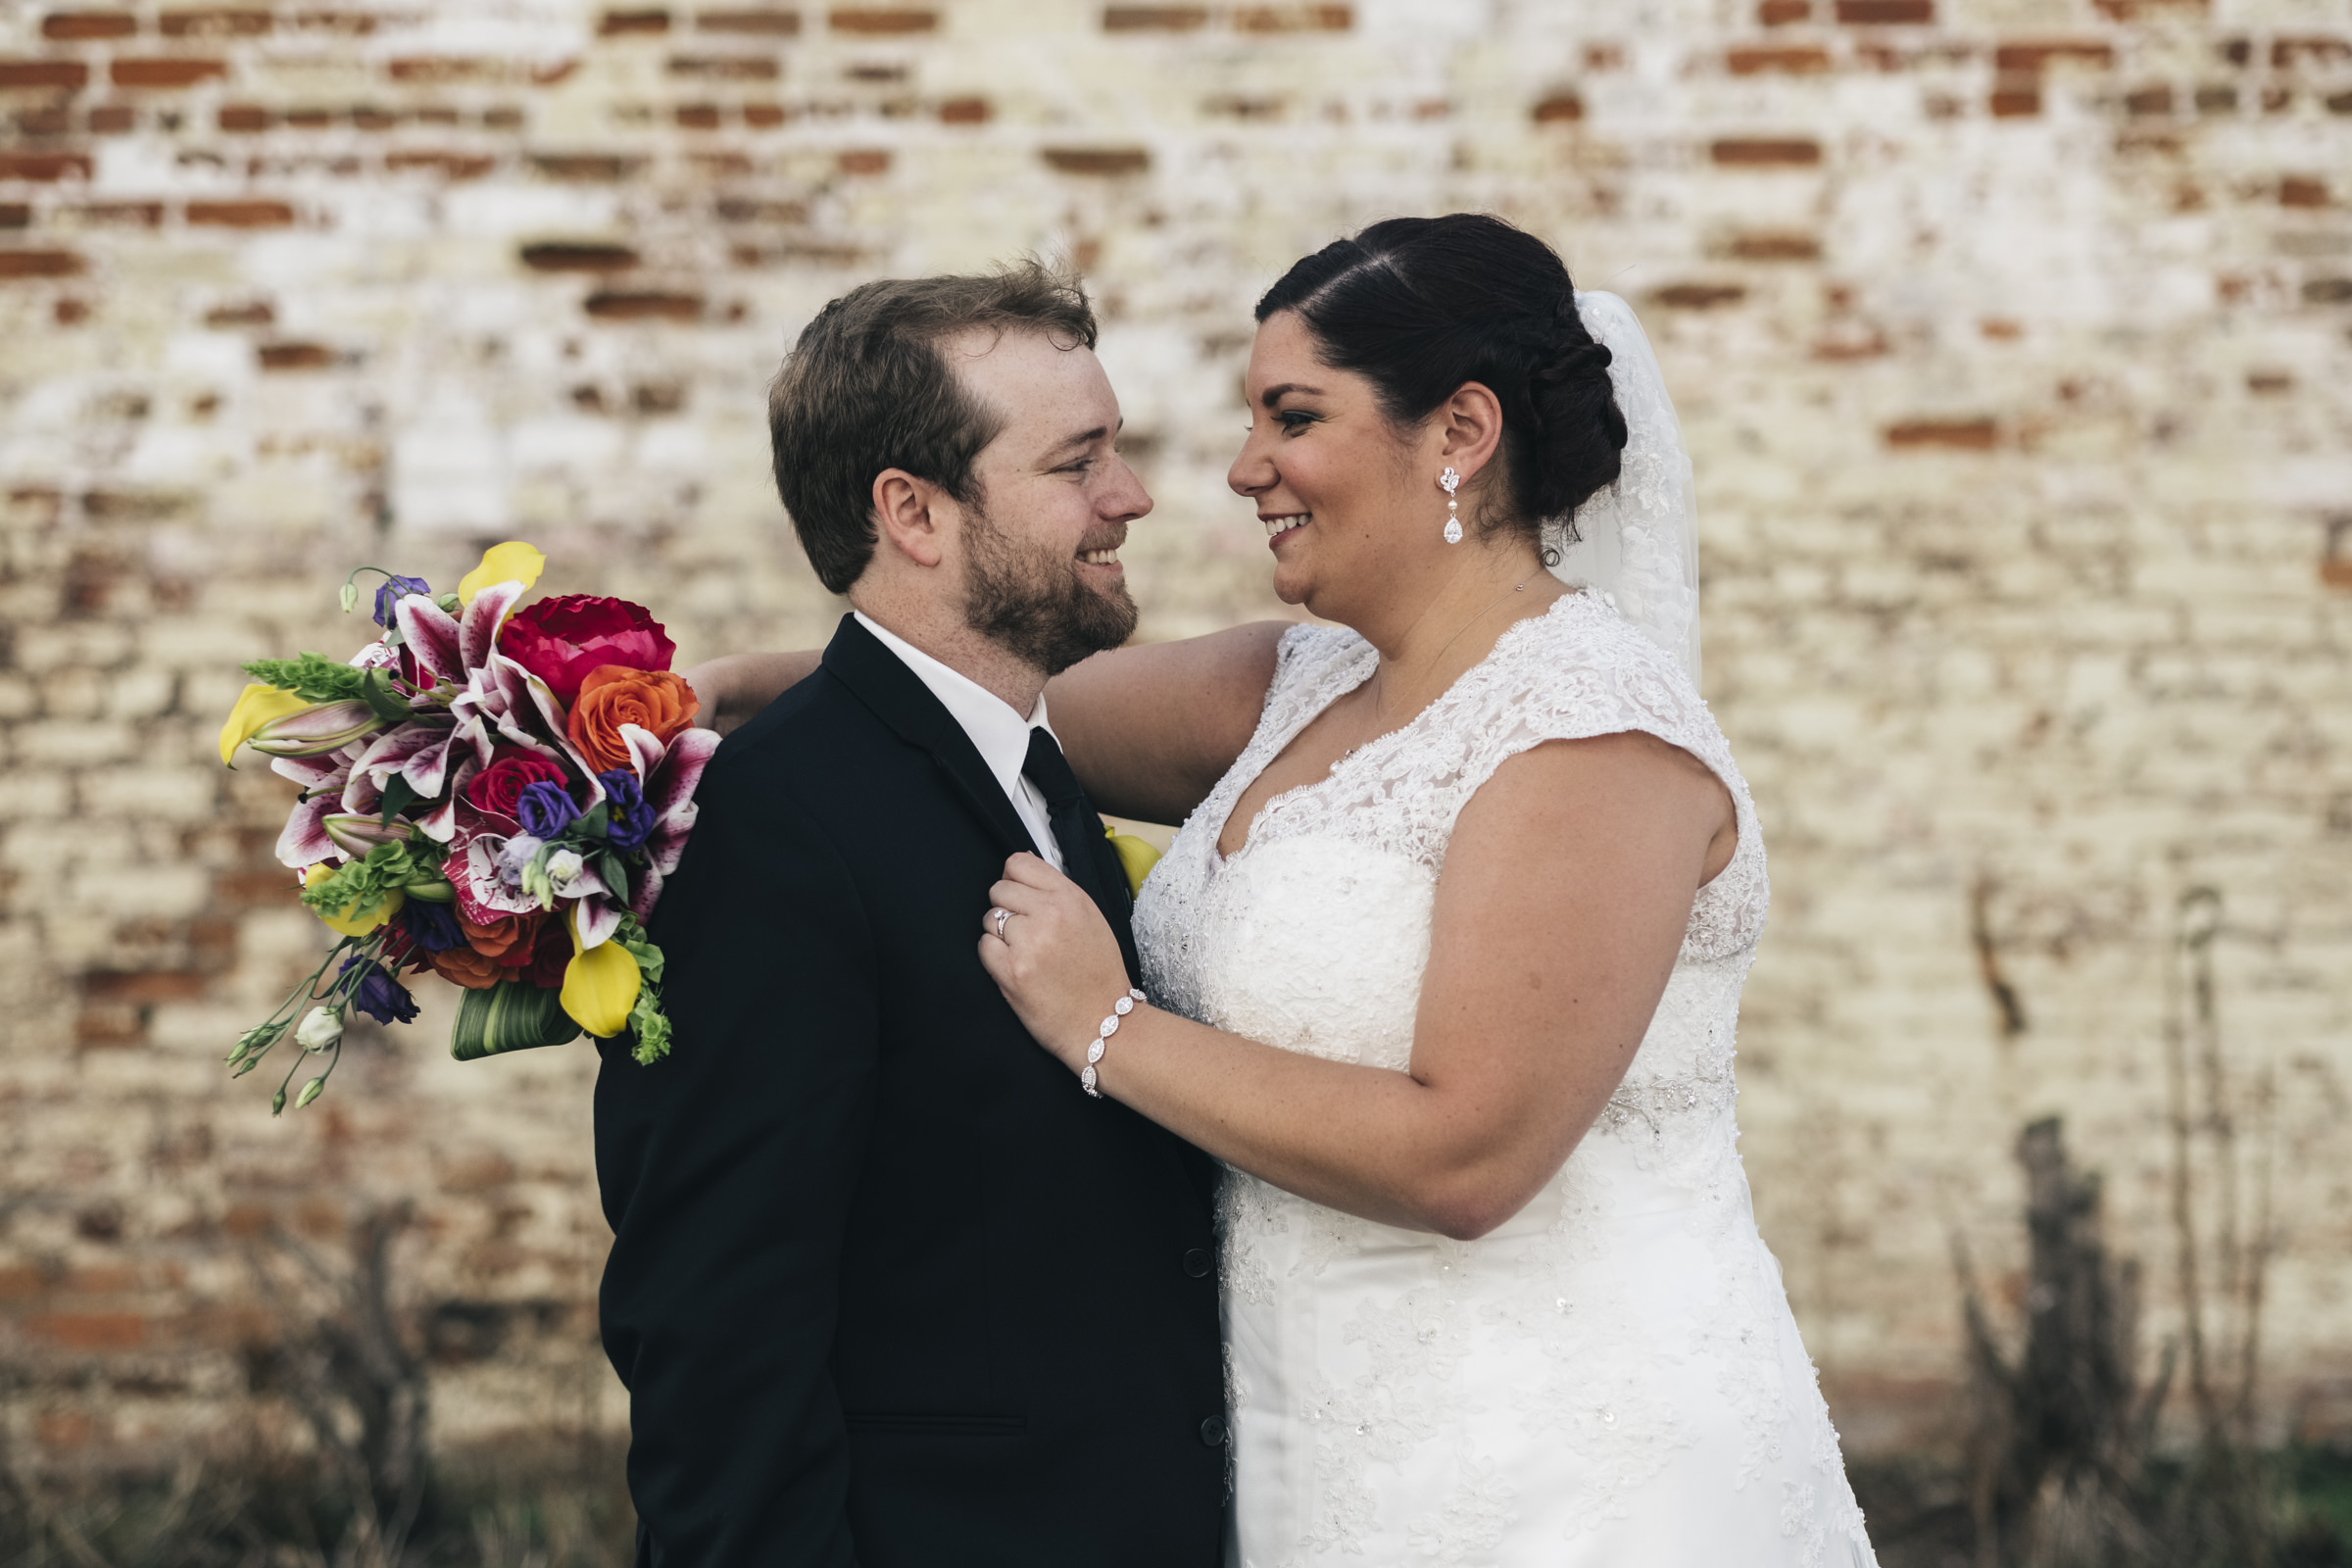 Bride and groom share an intimate moment during their photo session outside a warehouse in Toledo Ohio